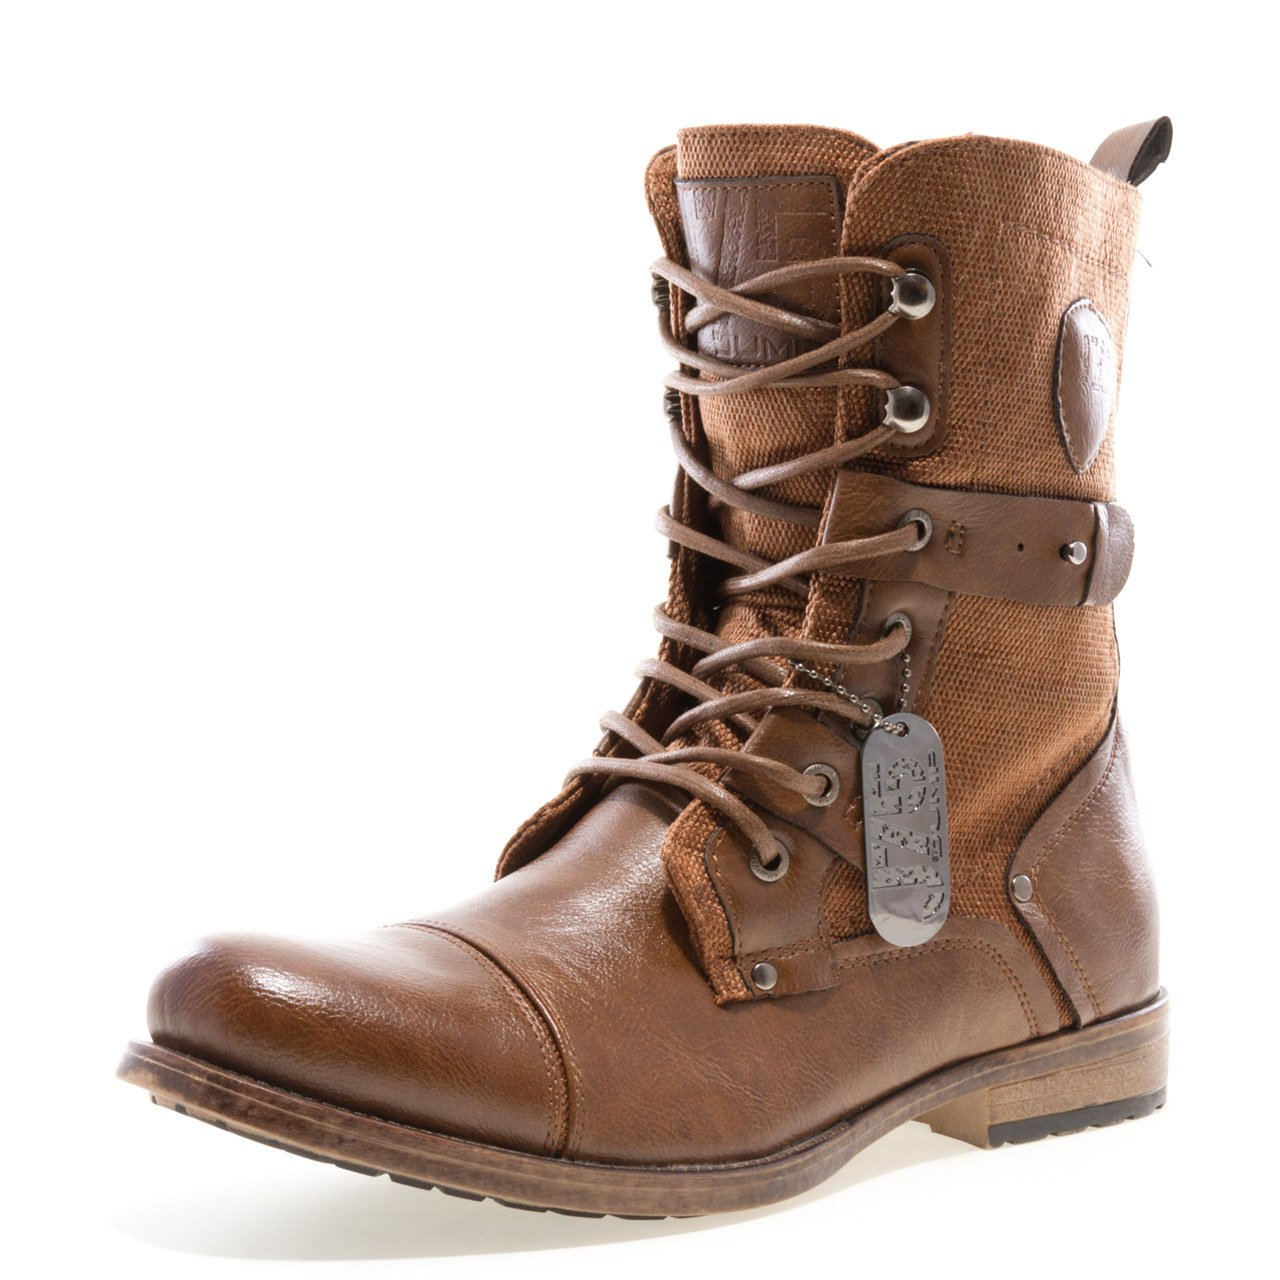 Jump J75 by Men's Deploy Military Boot Tan 11 D US